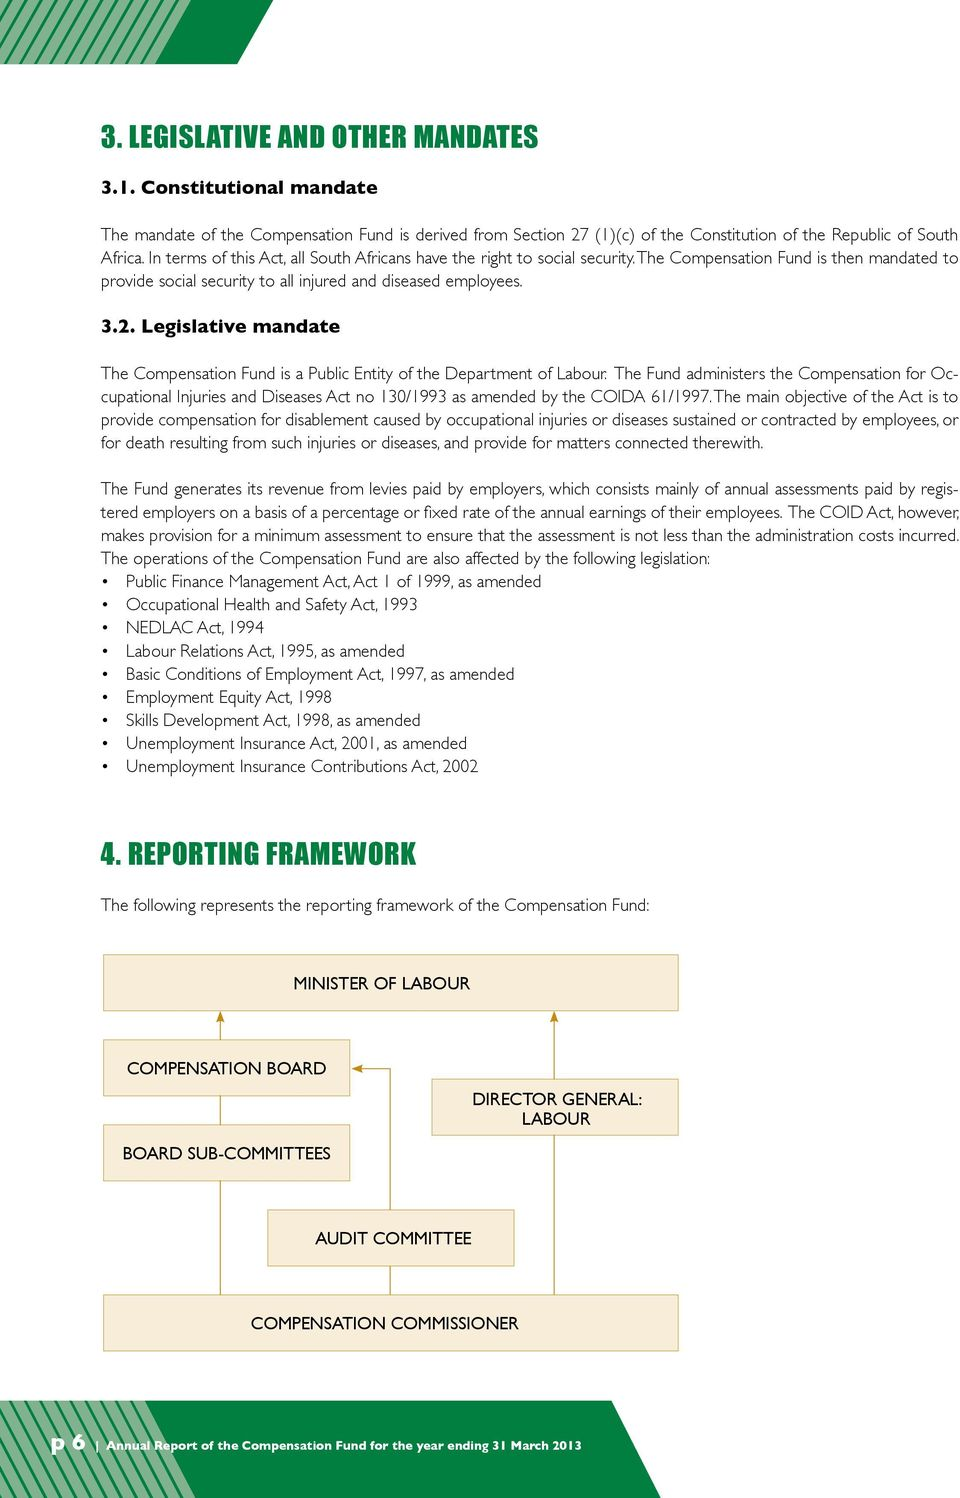 Legislative mandate The Compensation Fund is a Public Entity of the Department of Labour.